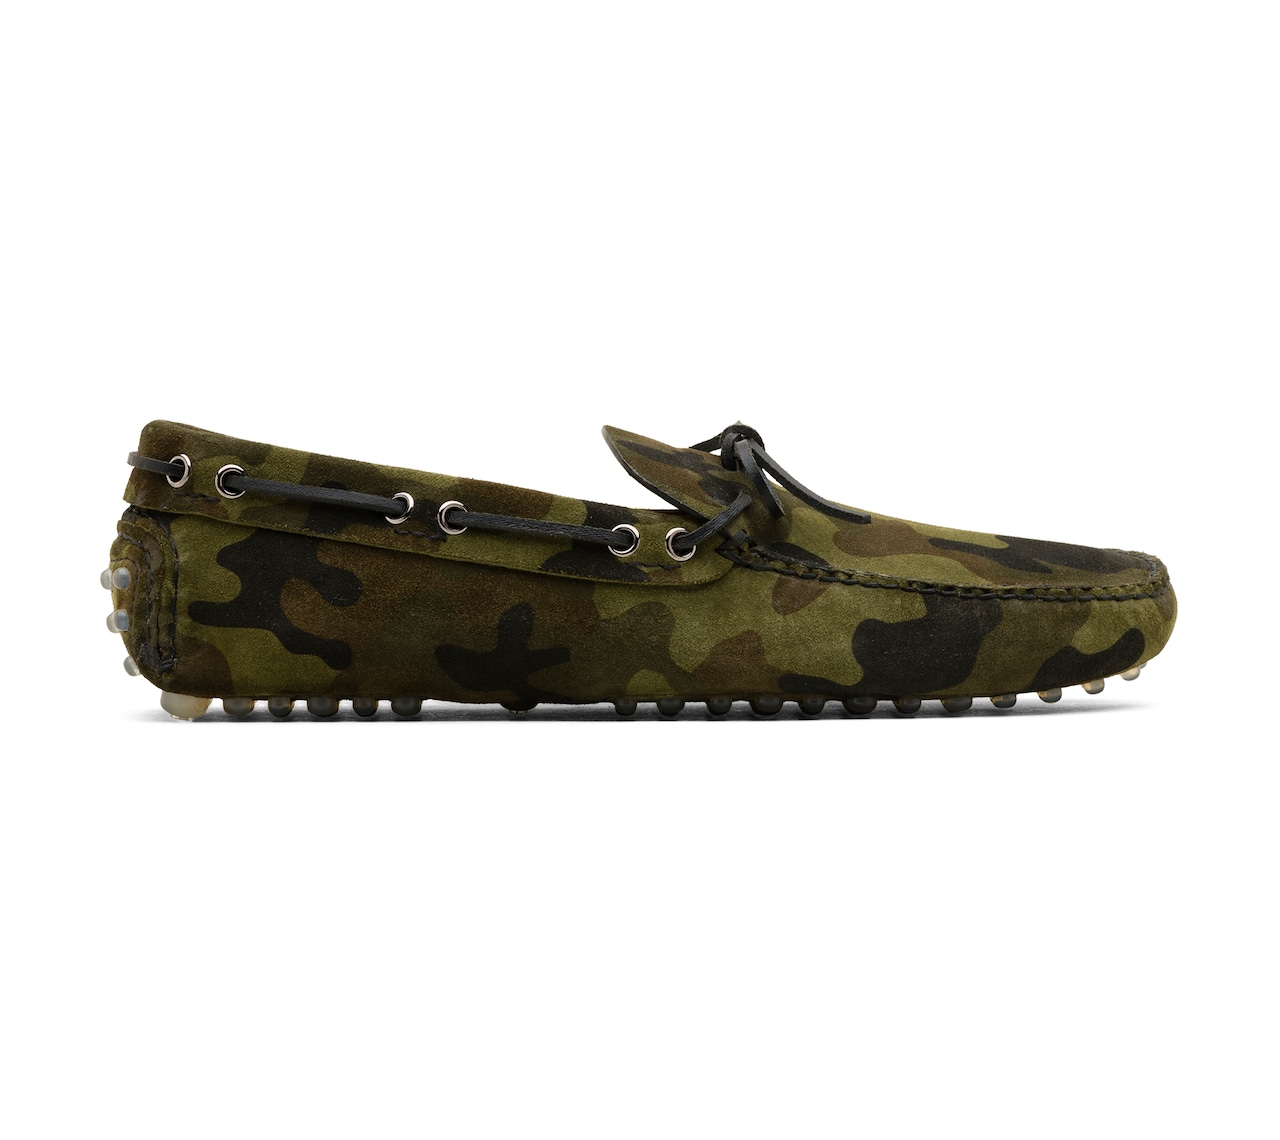 CAMOUFLAGE PRINTED SUEDE DRIVING SHOES